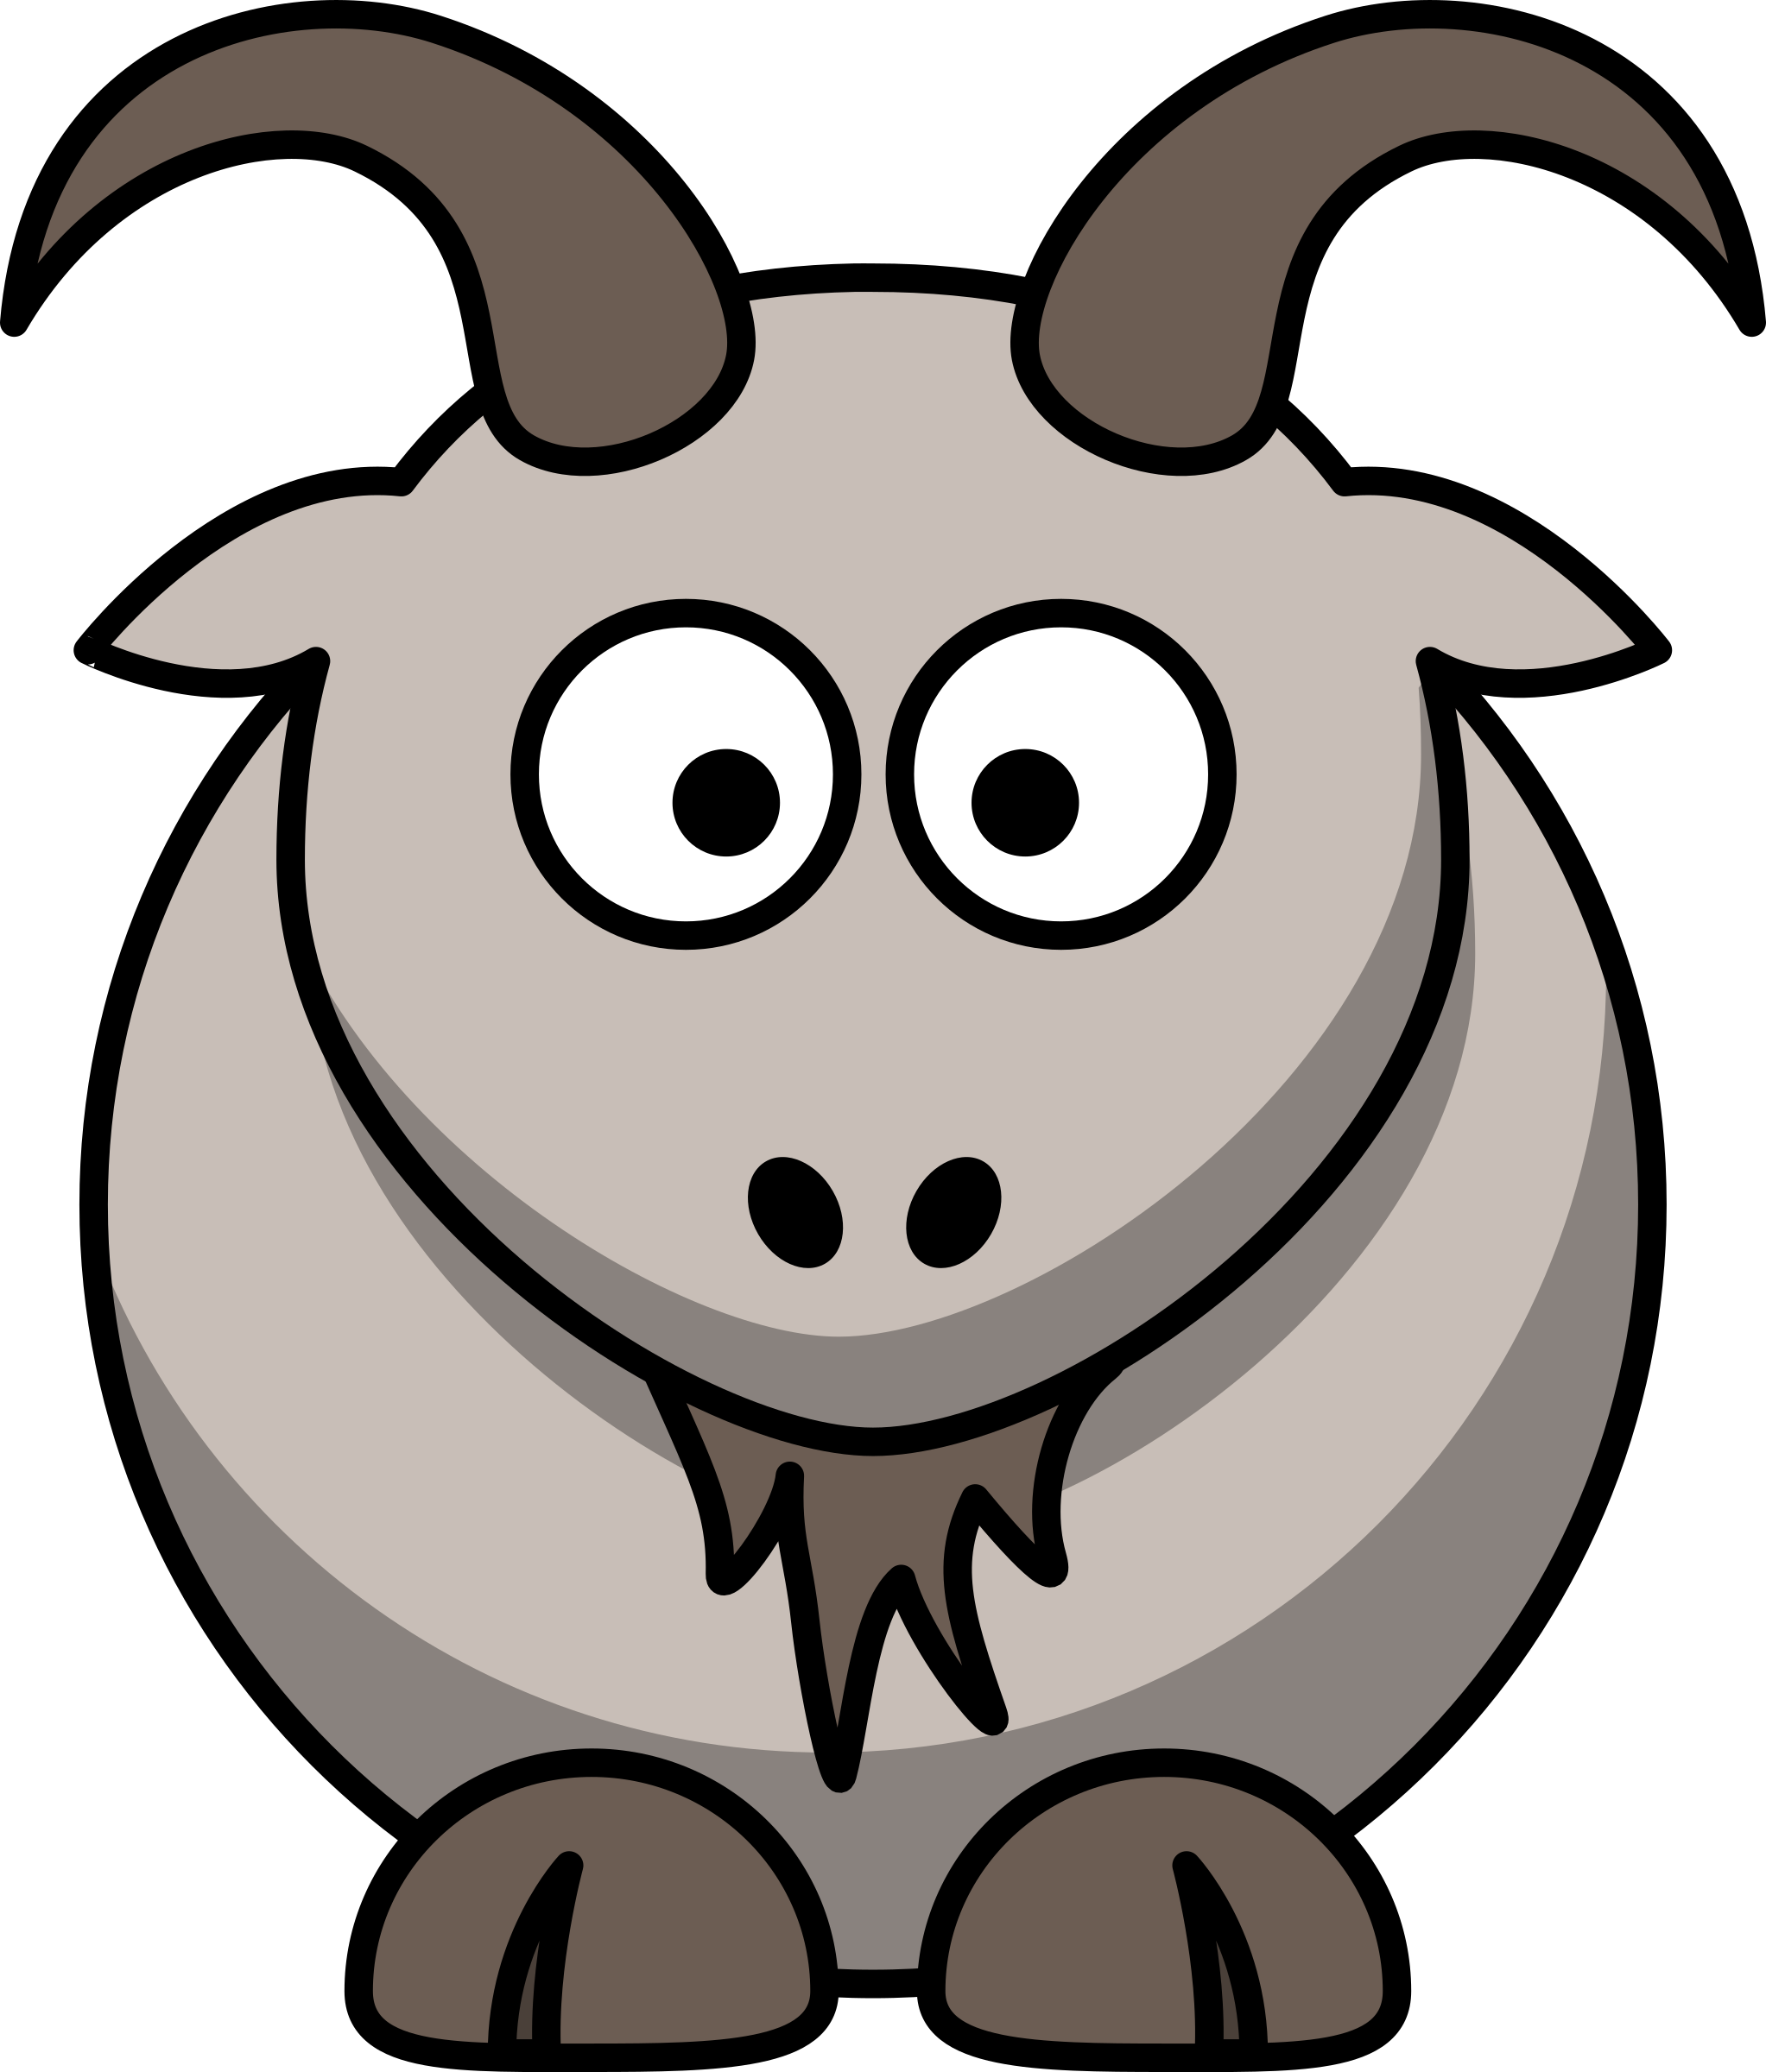 Drawing goats cartoon. Goat icons png free